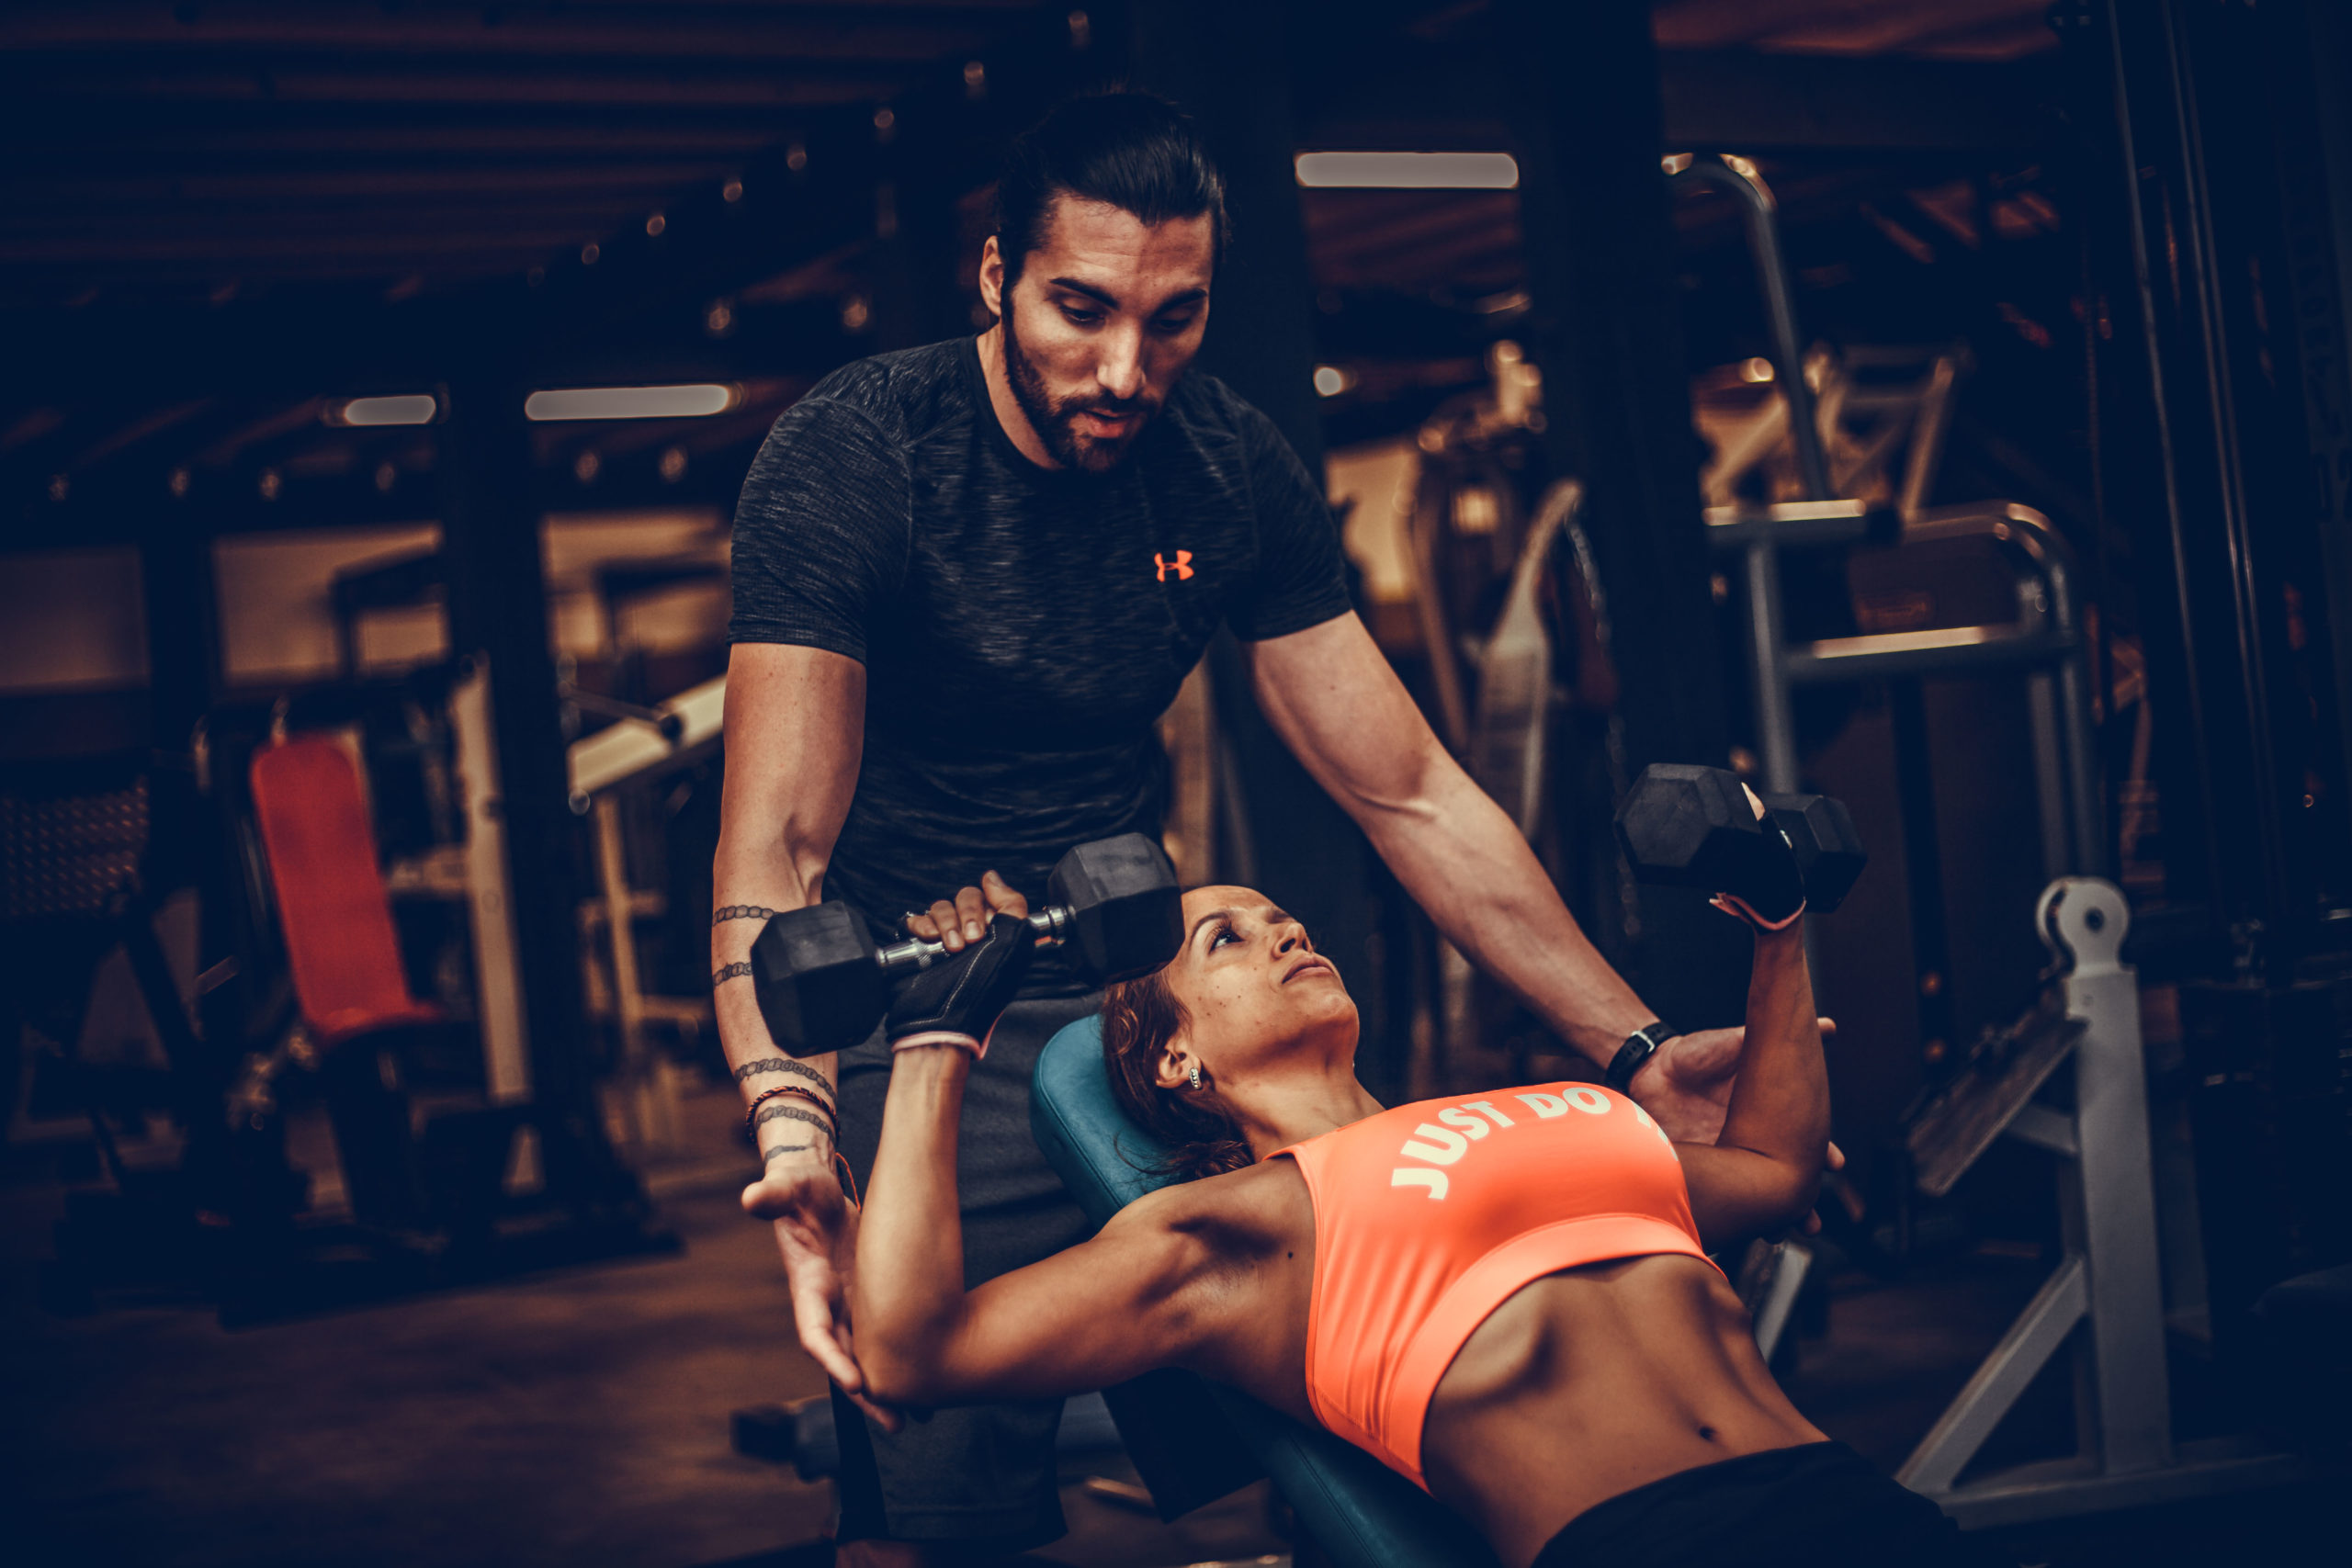 LE PERSONAL TRAINING